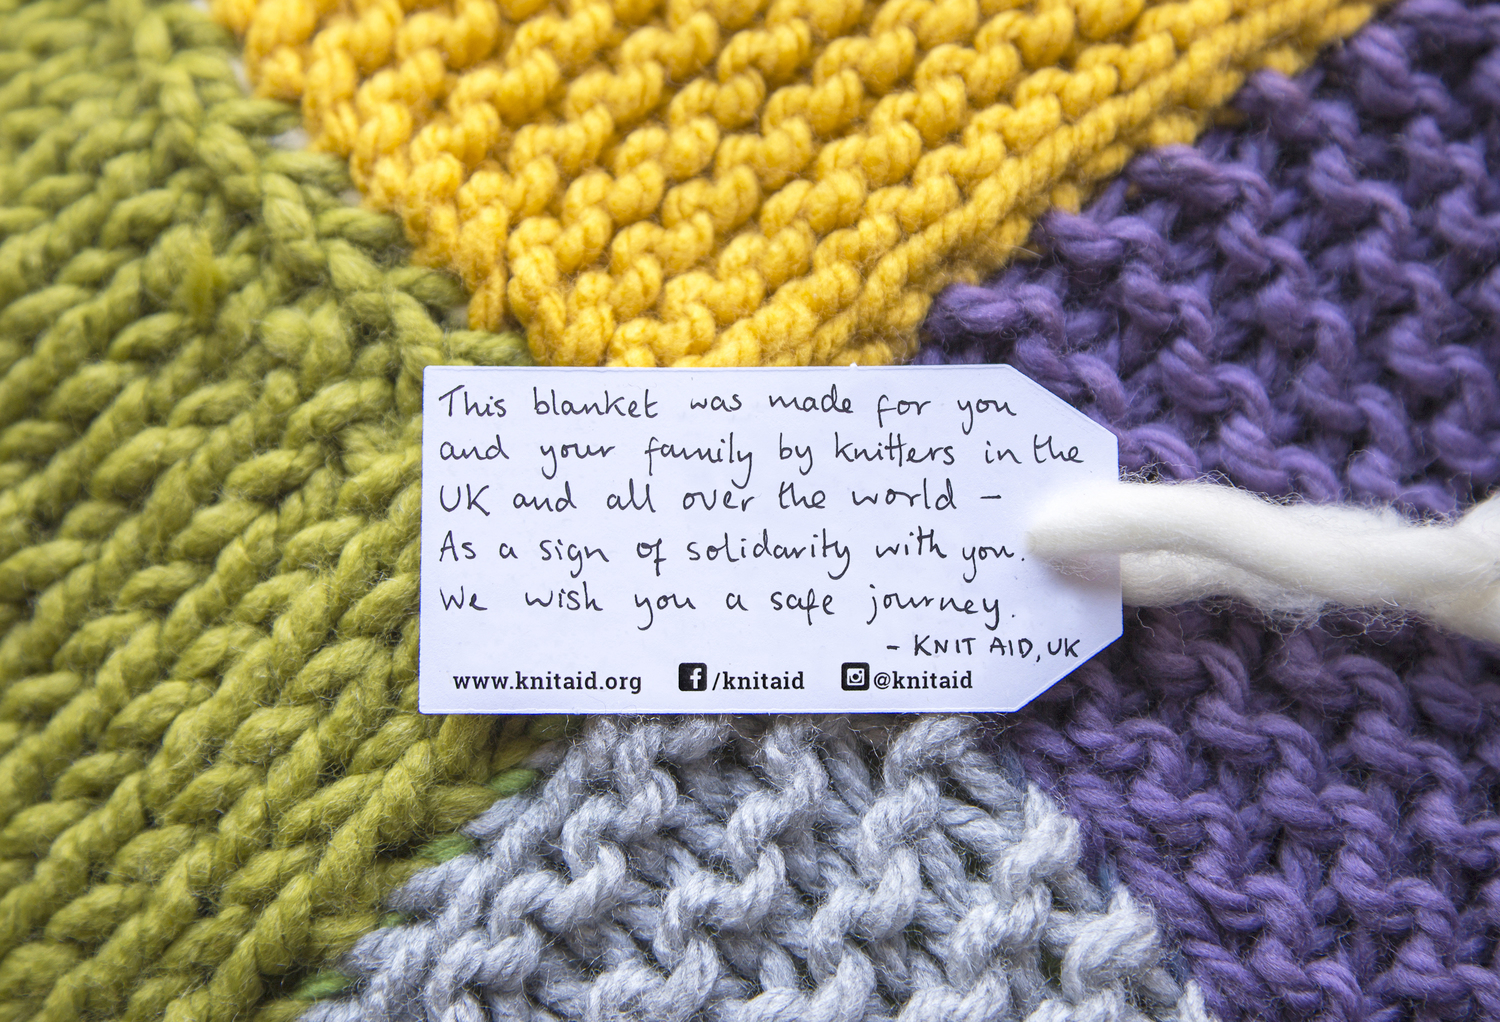 About Knit Aid